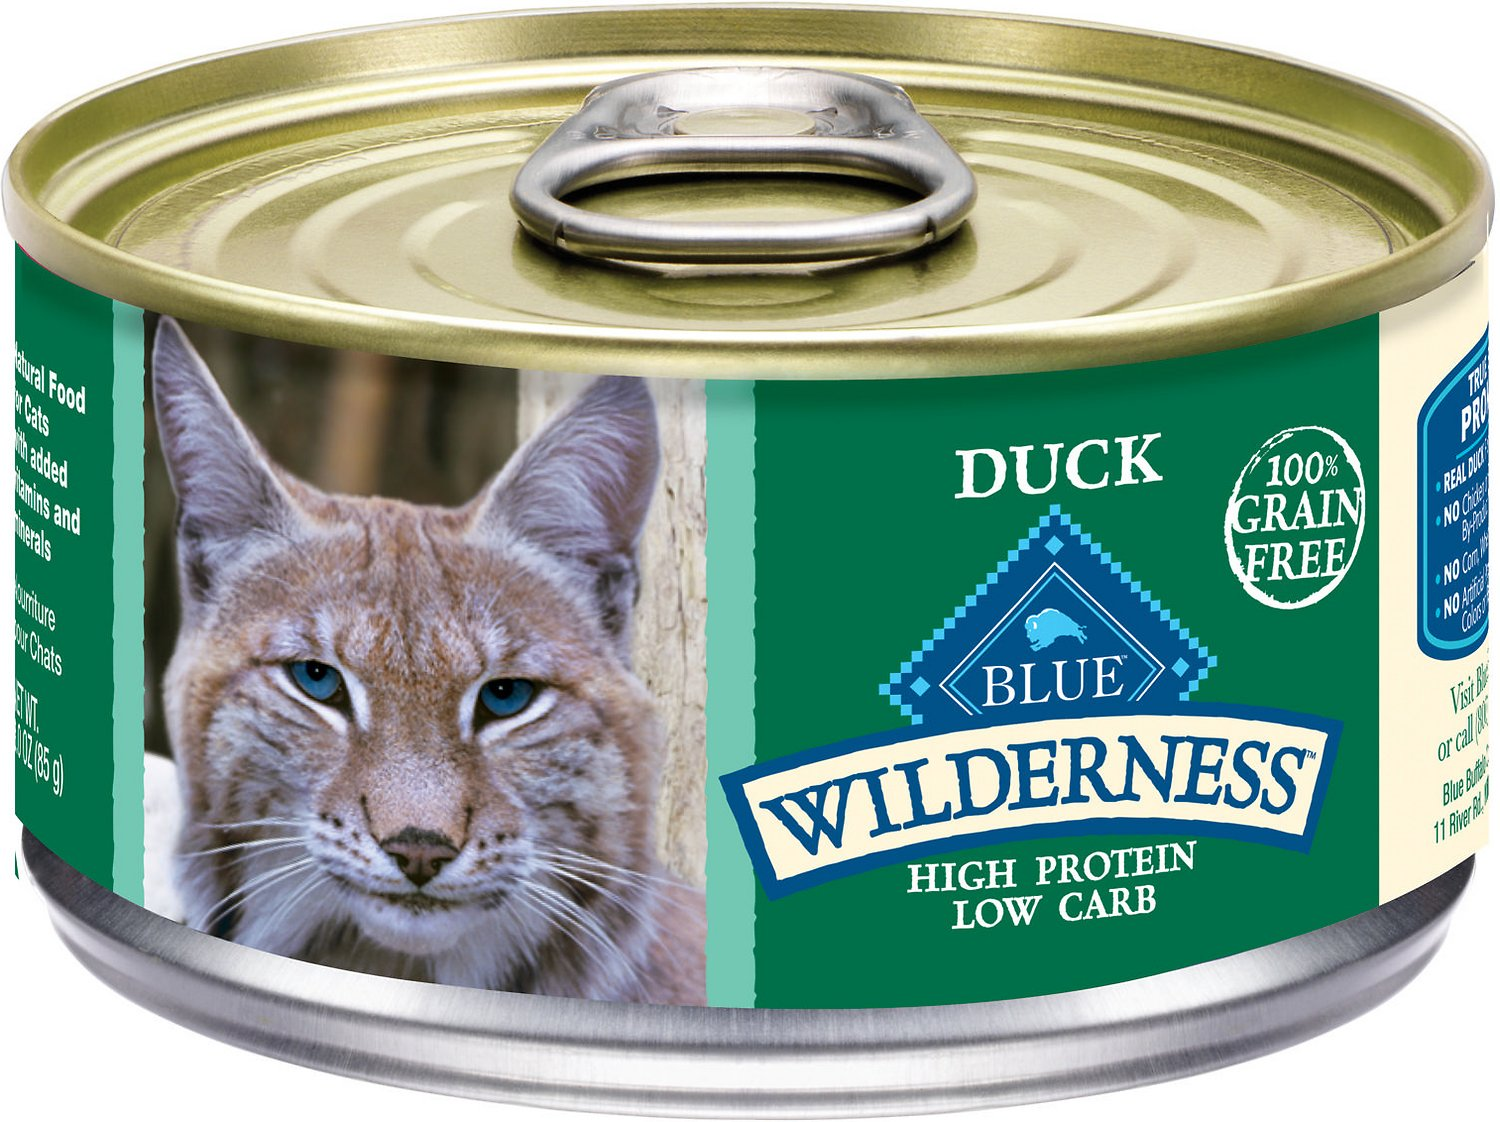 Blue Buffalo Wilderness Duck Grain-Free Canned Cat Food, 3-oz